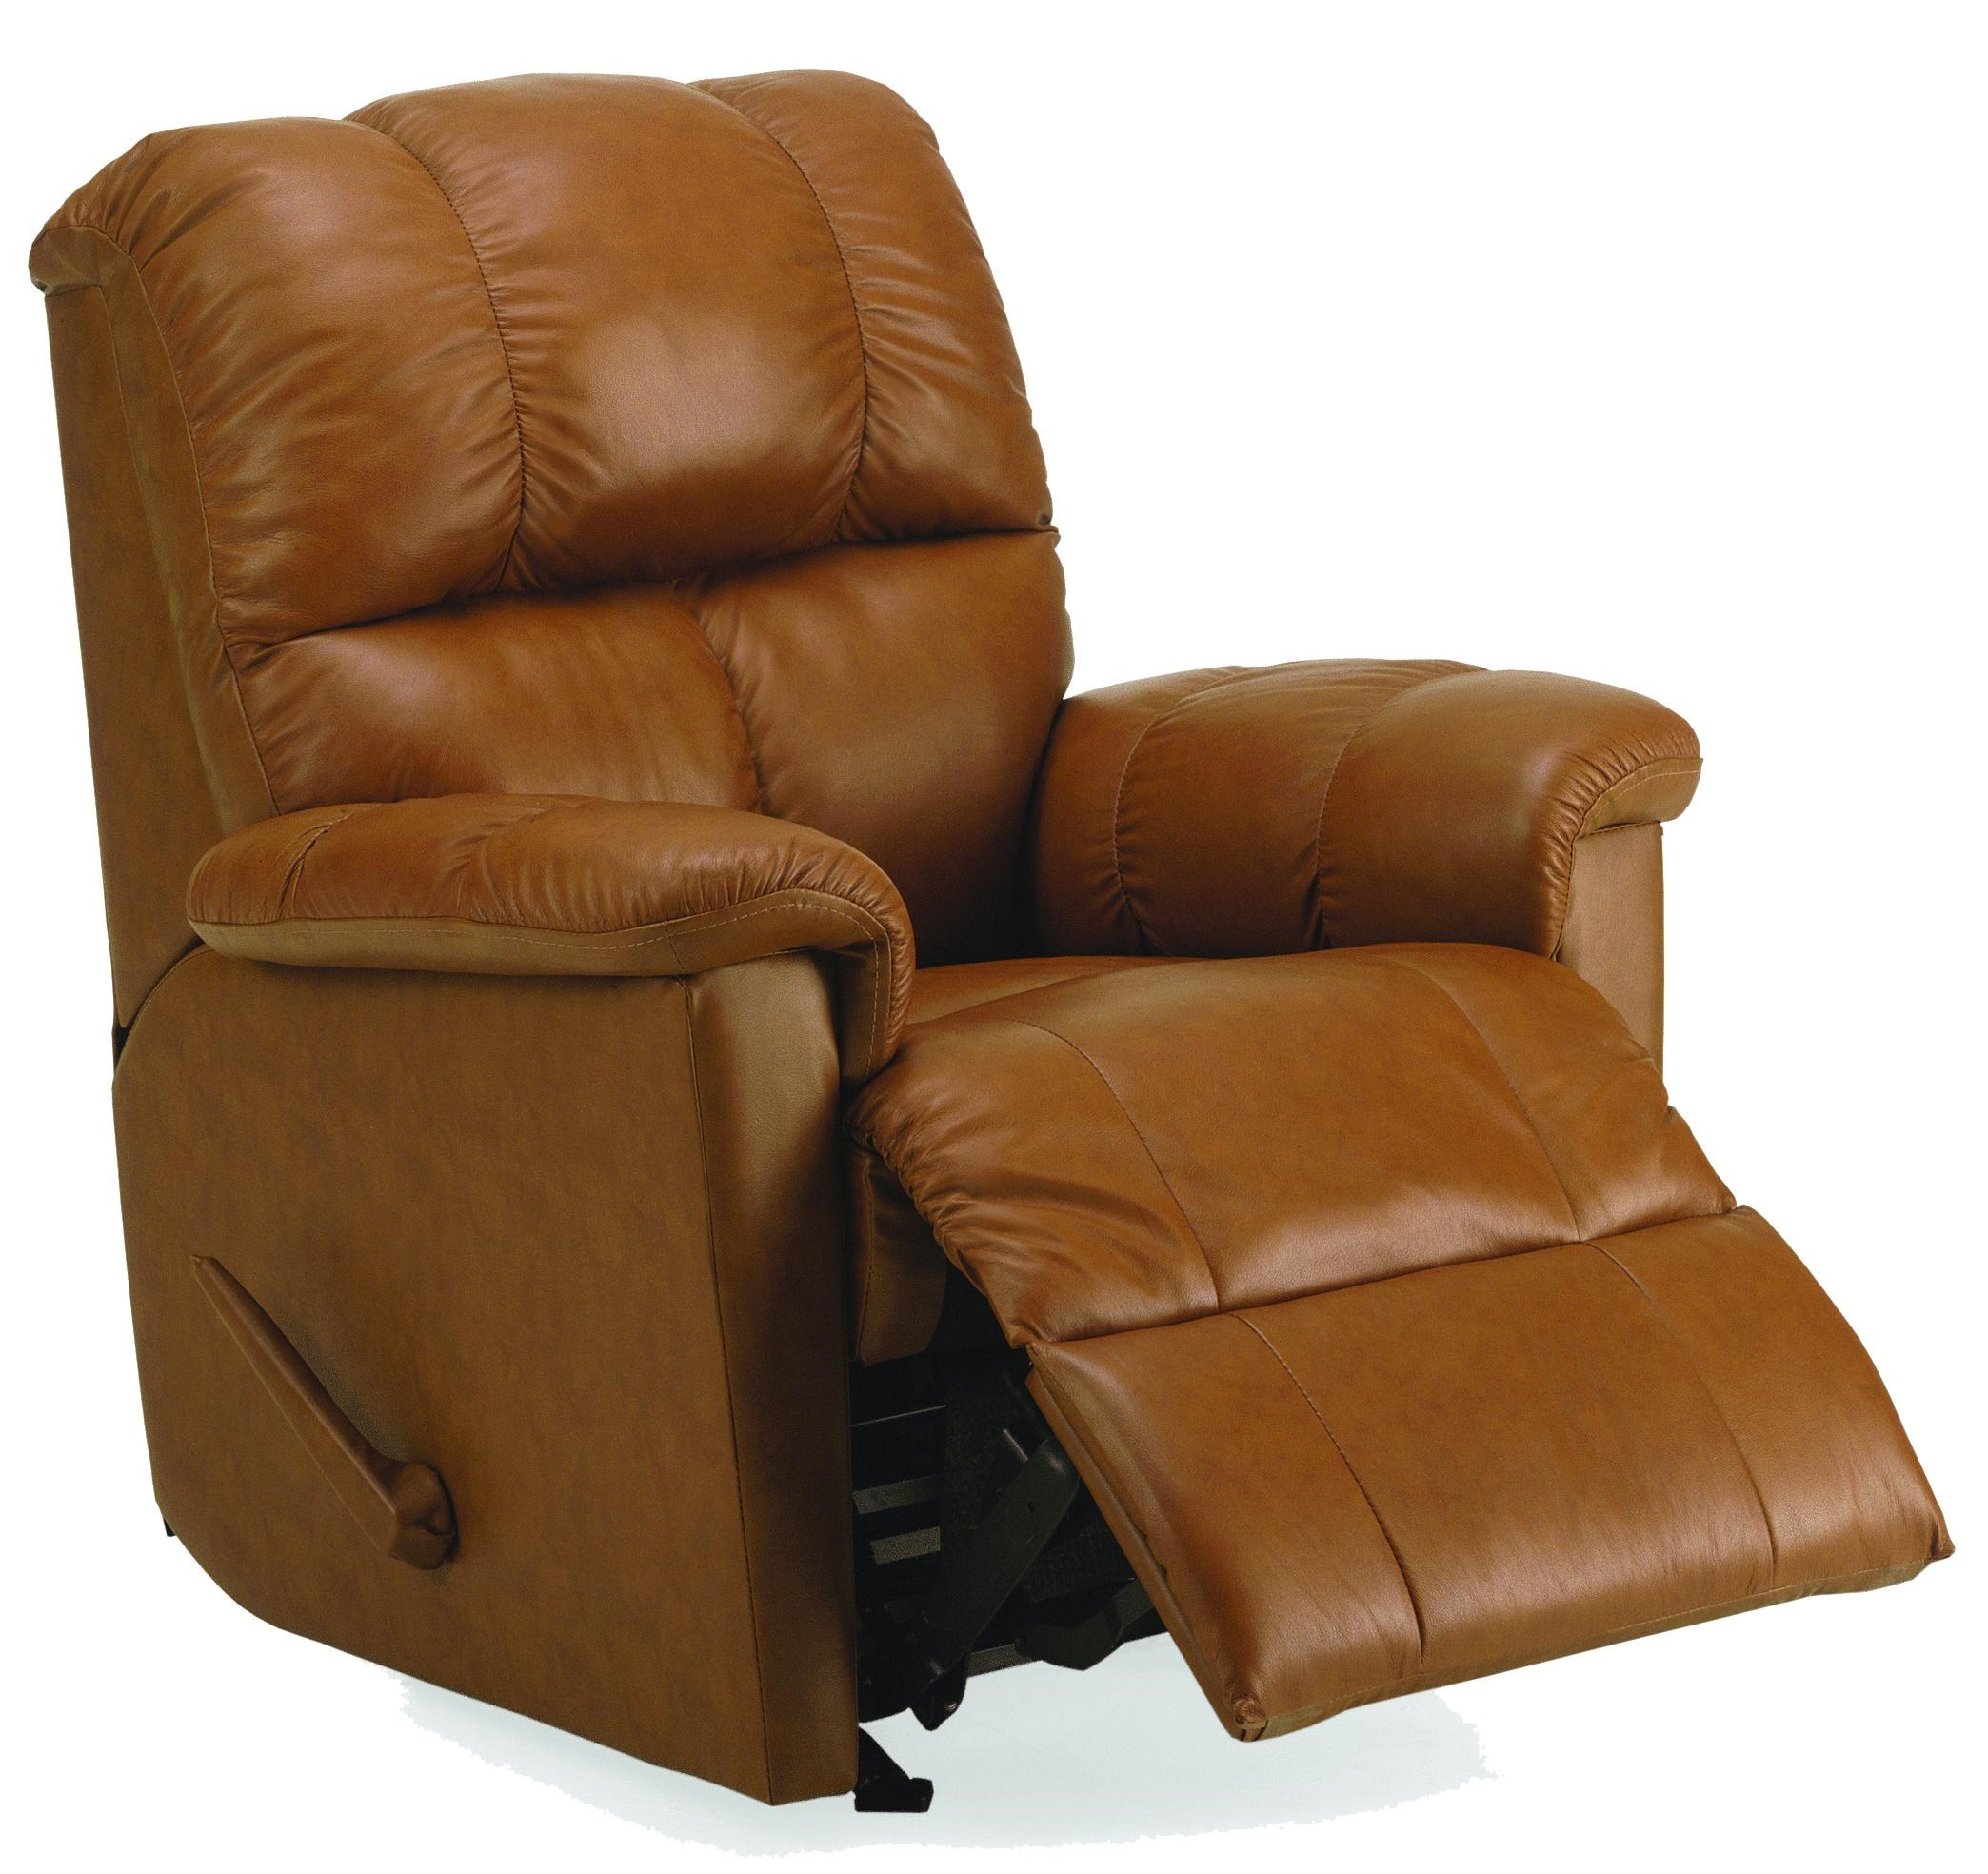 Palliser Gilmore Convienent Power Lift Chair | Jordan's Home